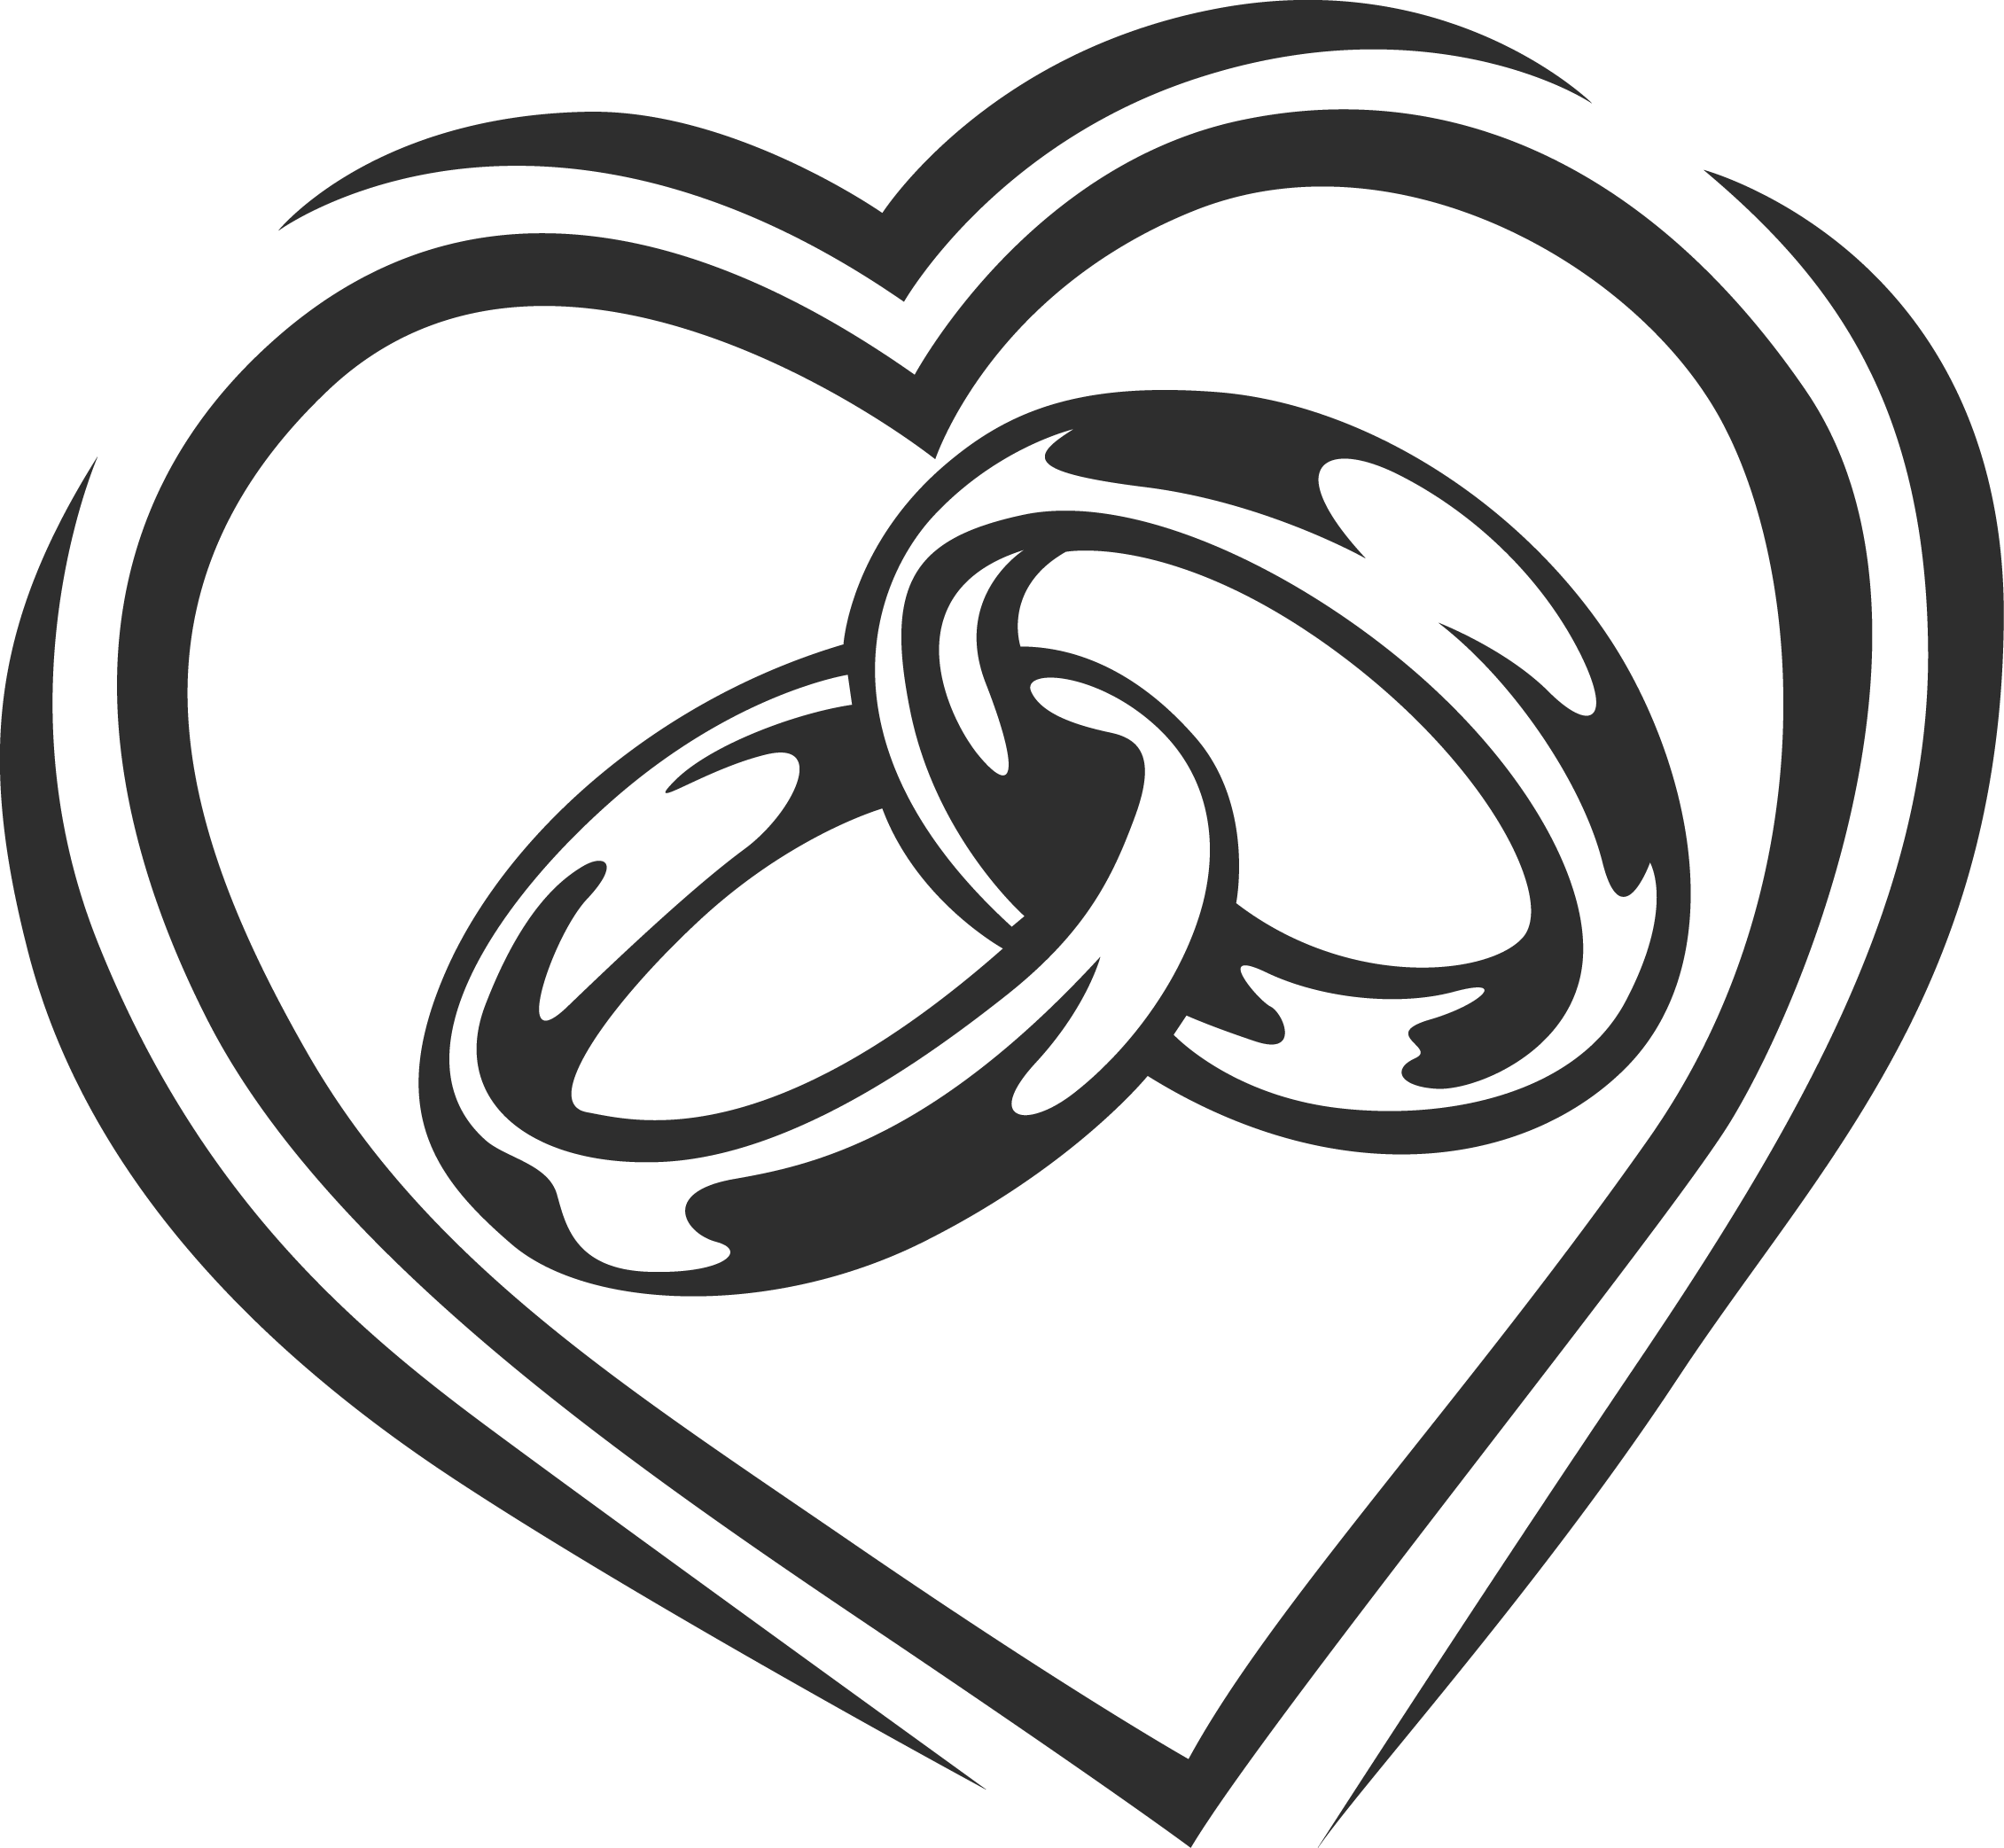 Tattoo clipart marriage. Drawings of wedding rings